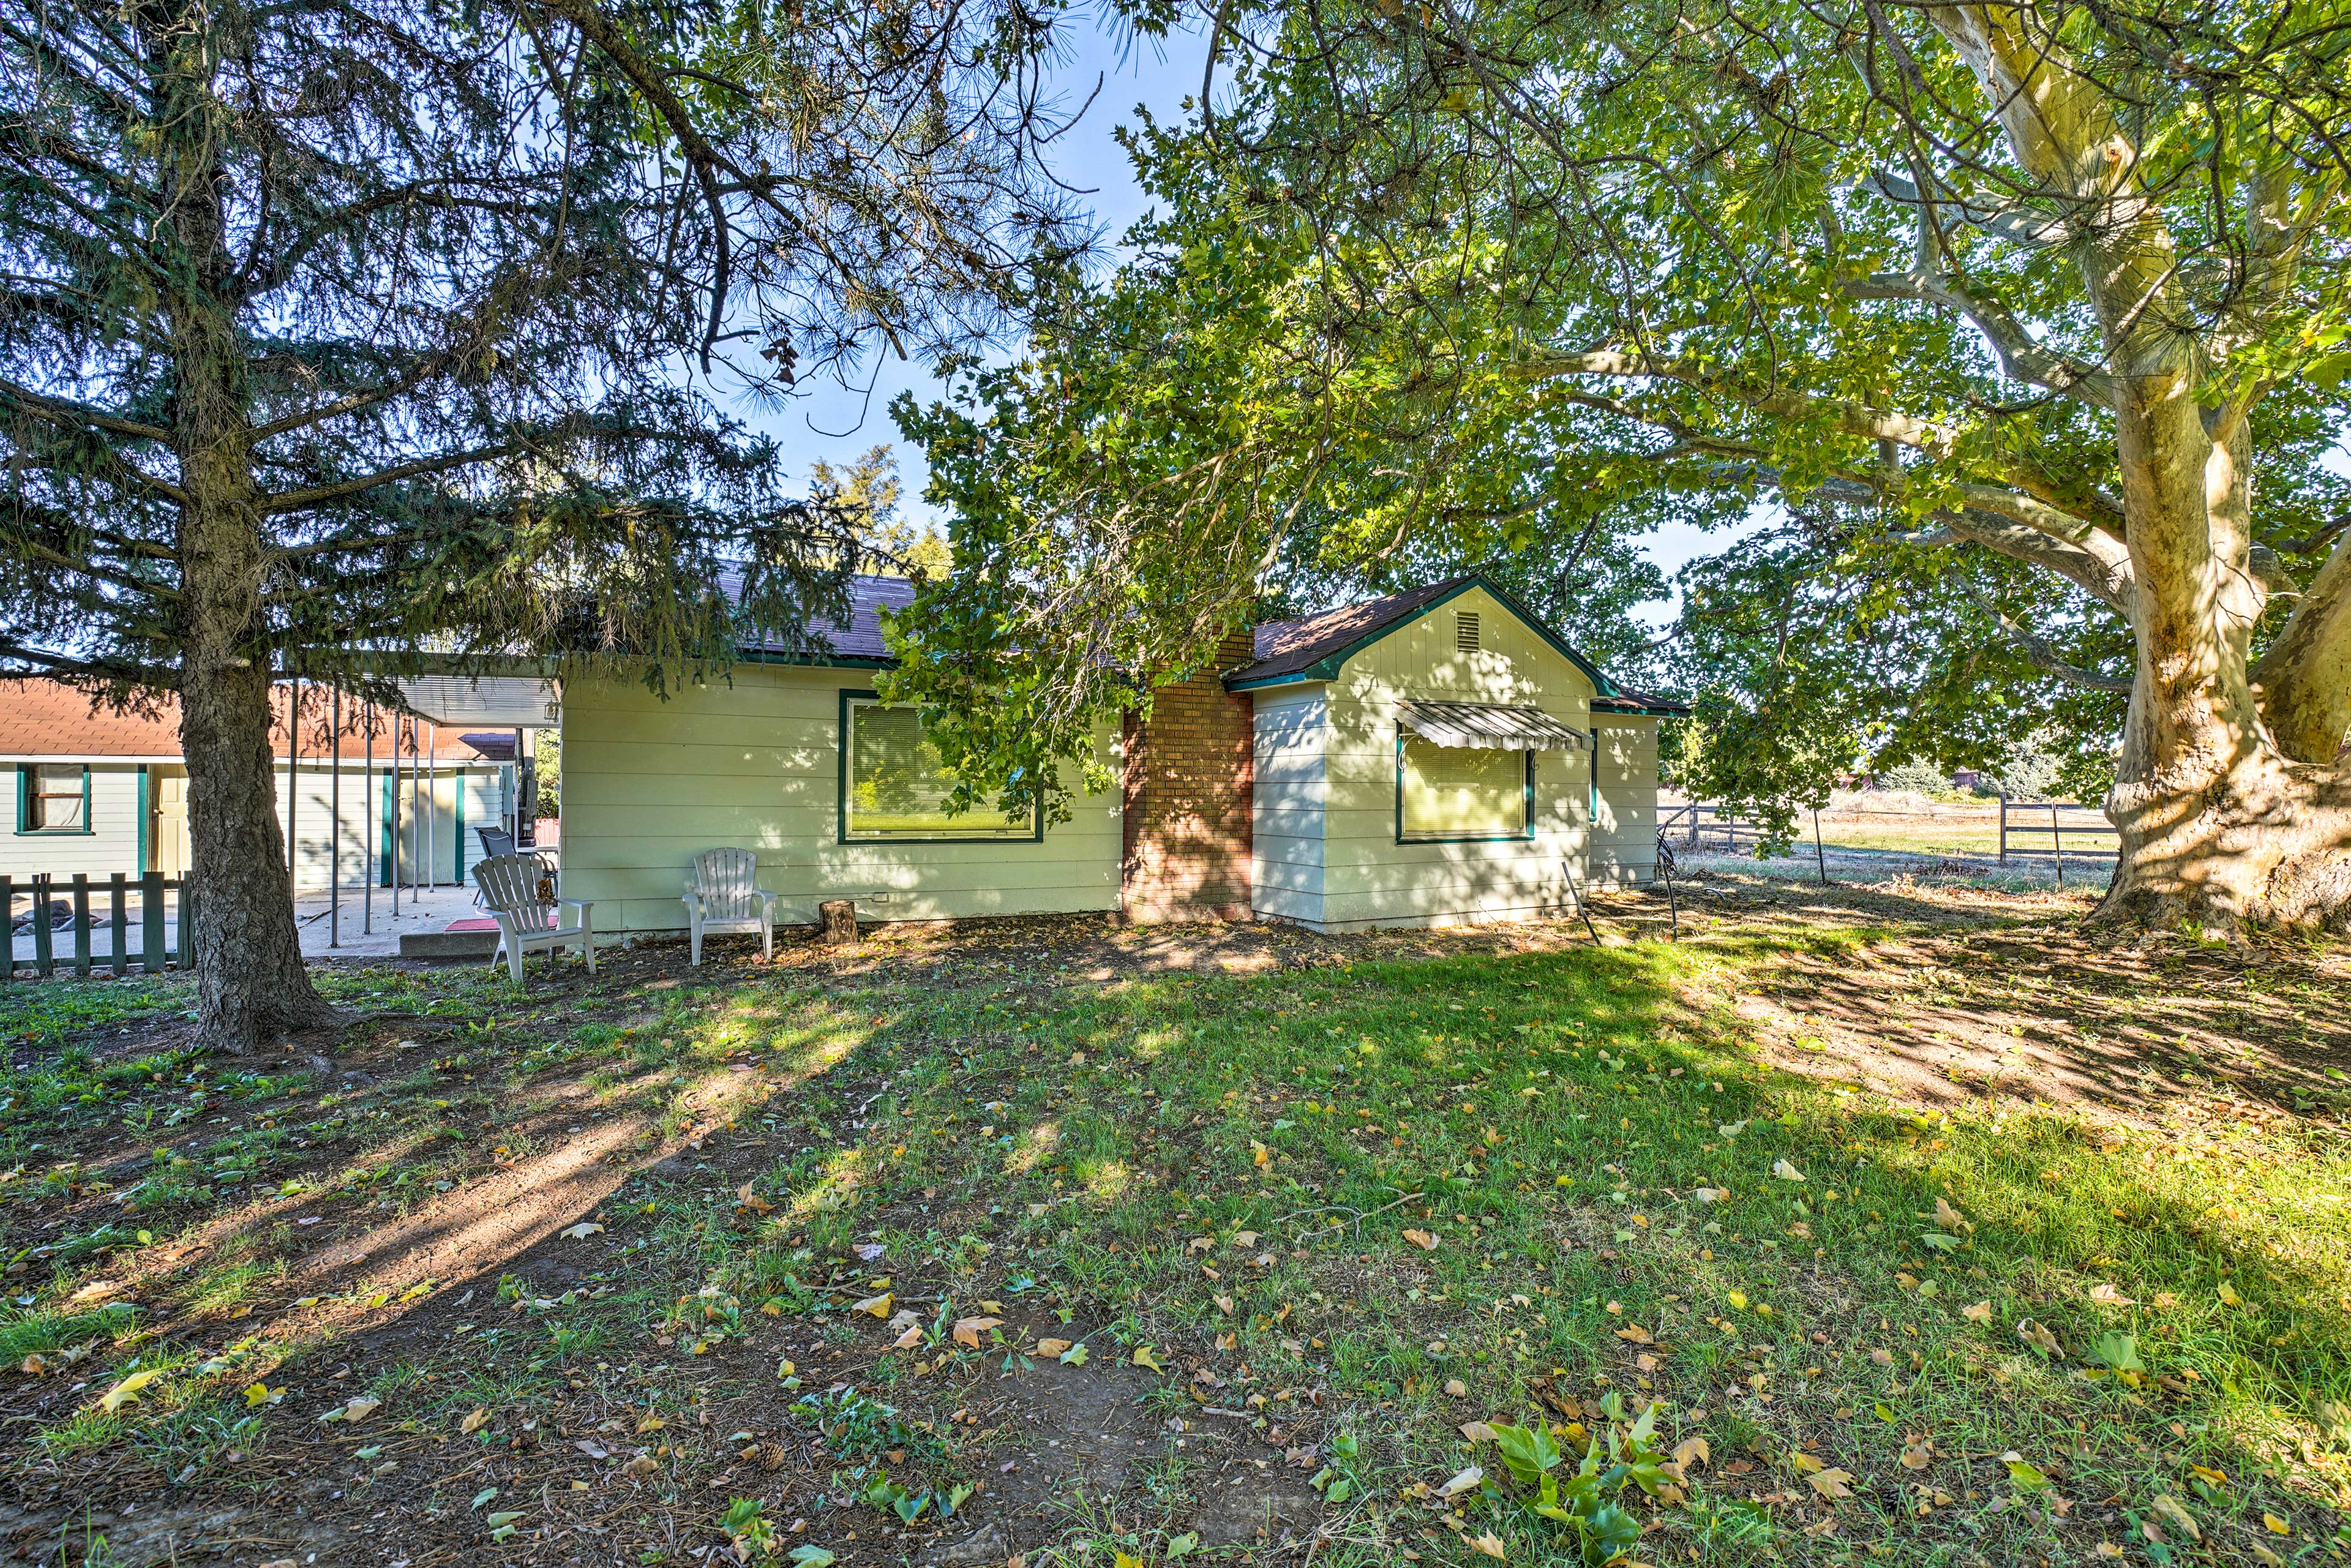 This 2-bedroom, 1-bath vacation rental is ideal for your next Boise holiday!